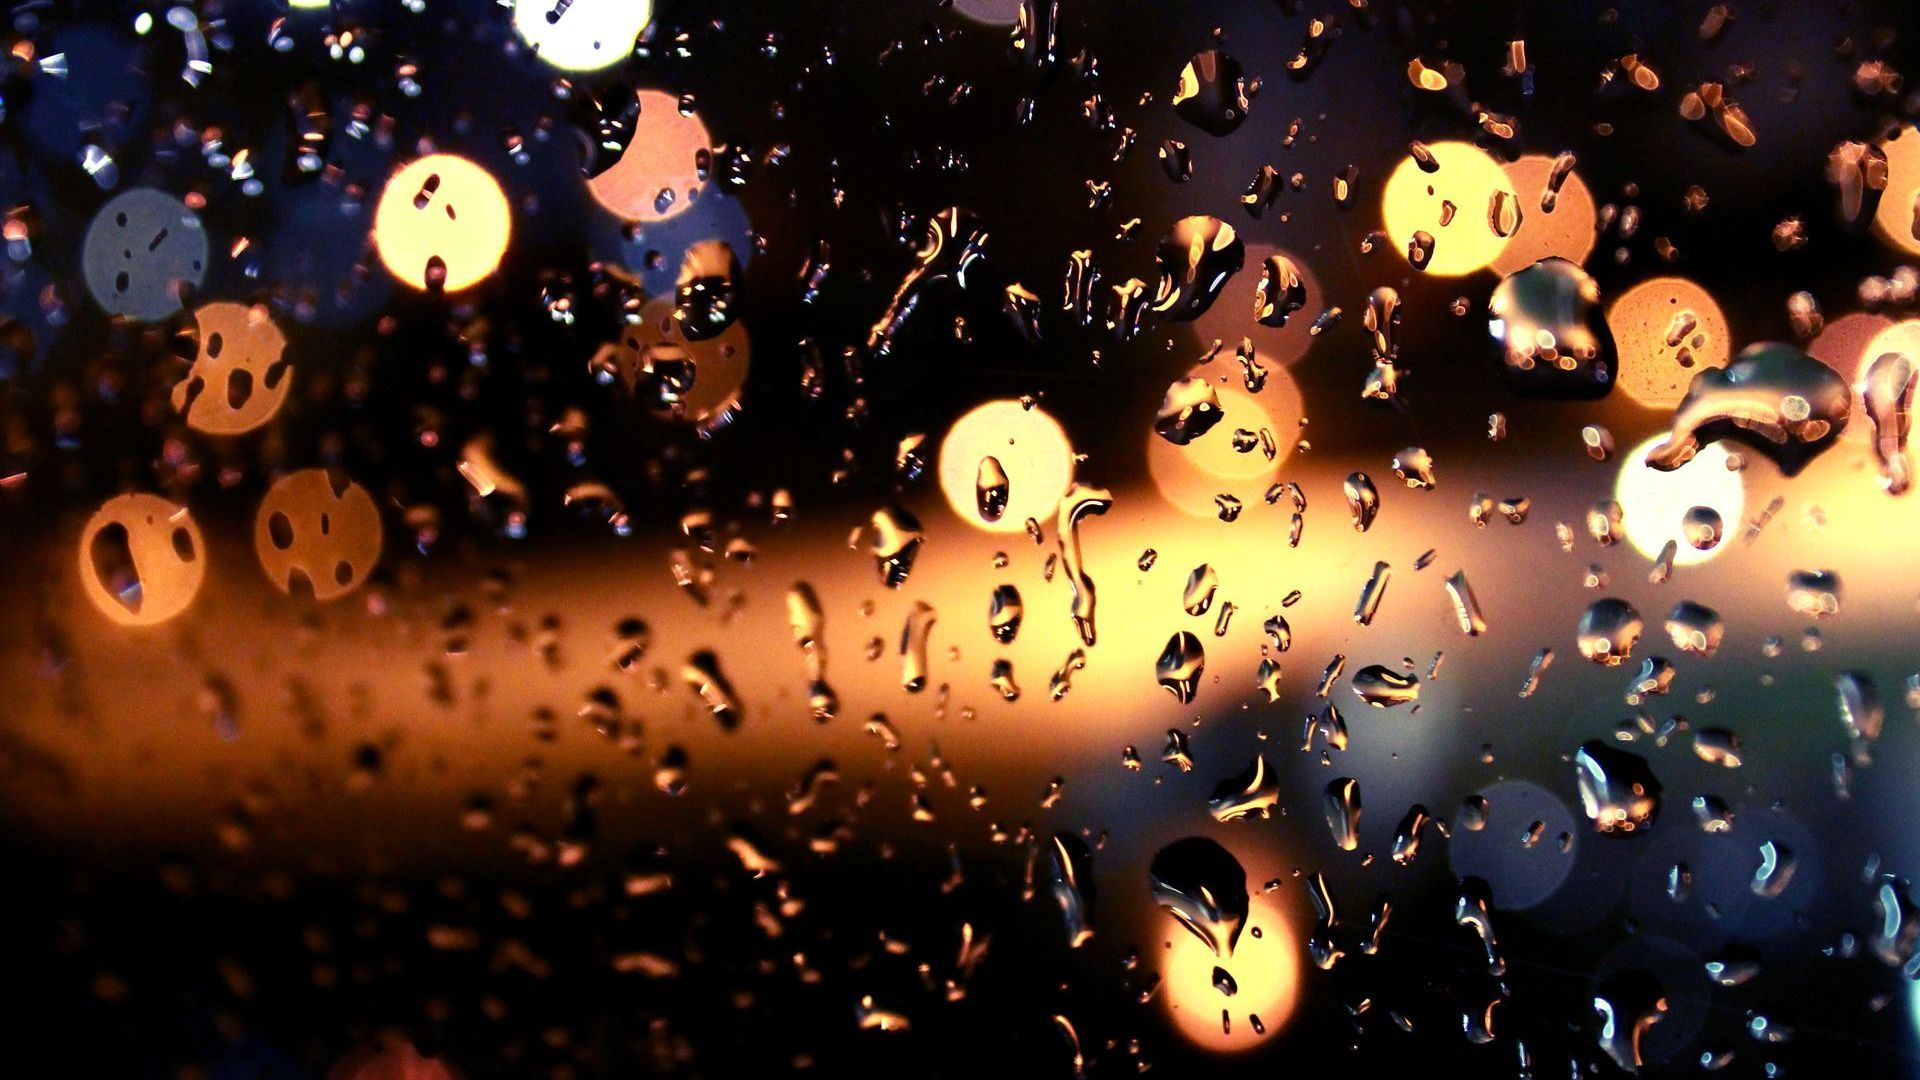 1920x1080 Rain Window Wallpaper